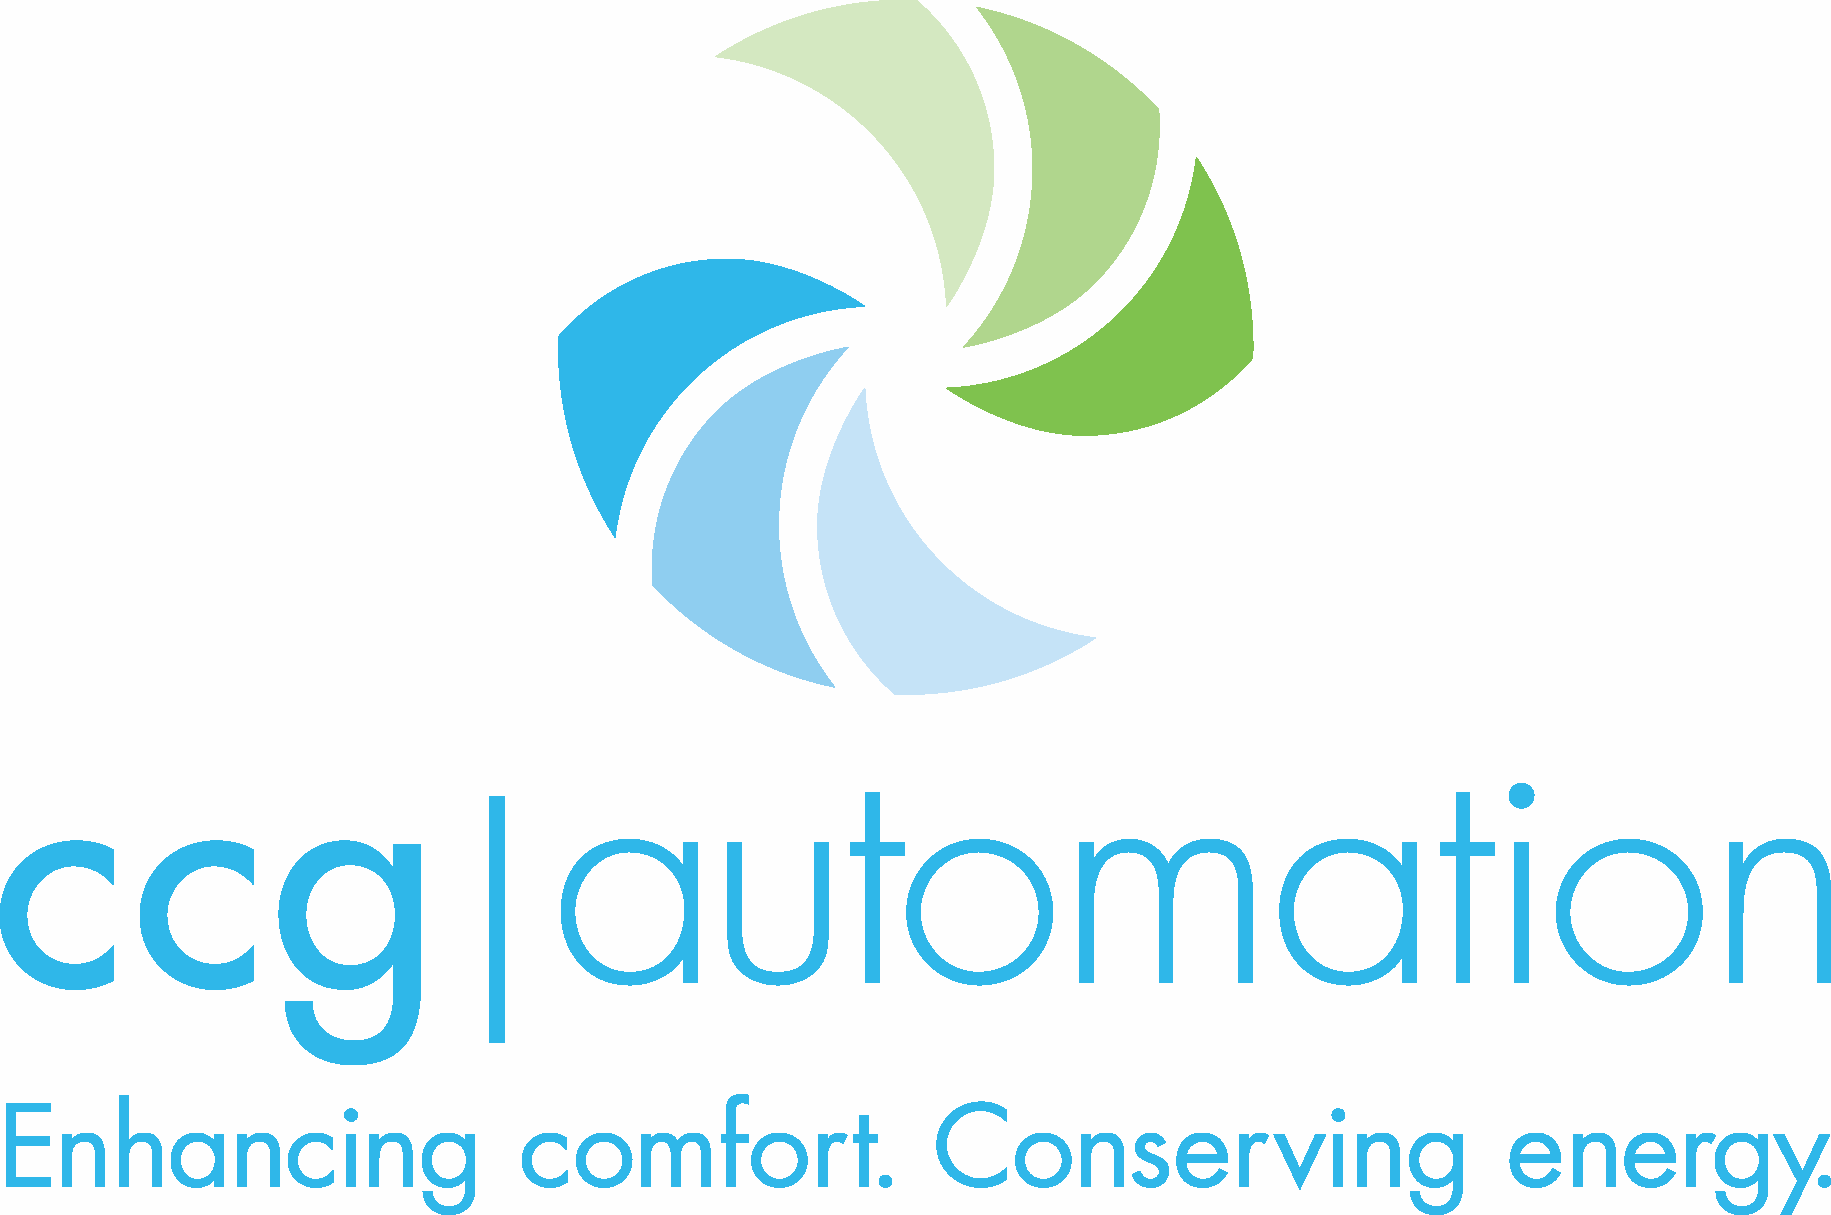 CCG_auto_logo_Tag_Vertical_CMYK.png